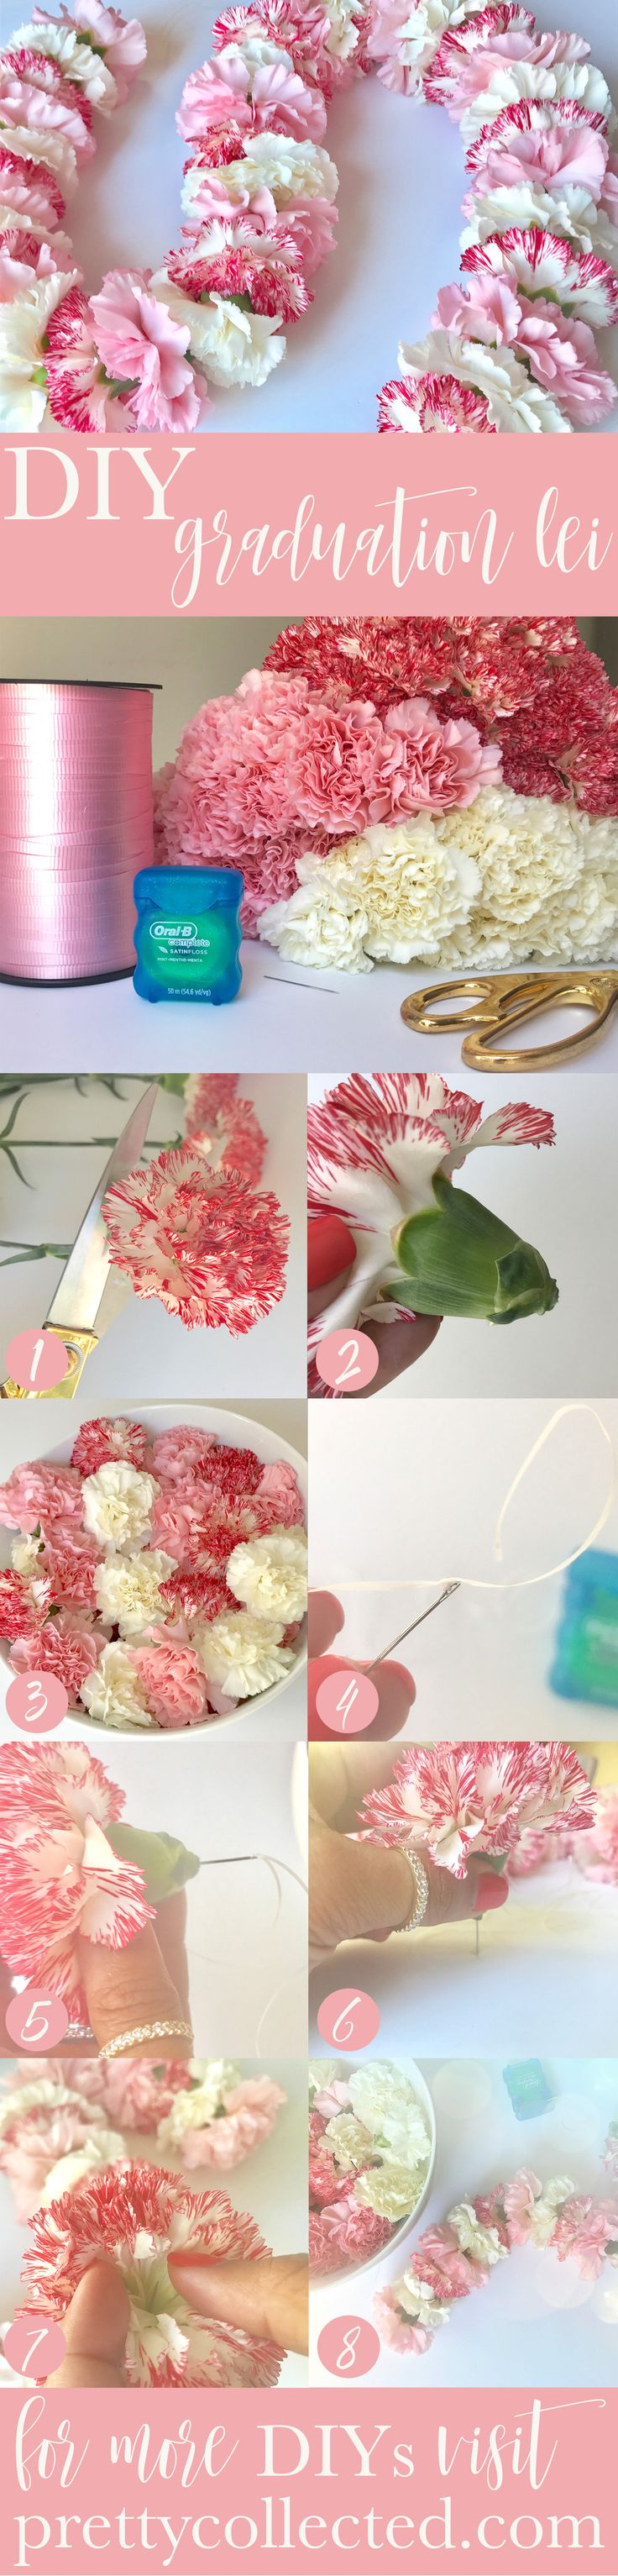 Diy Kindergarten Graduation Lei